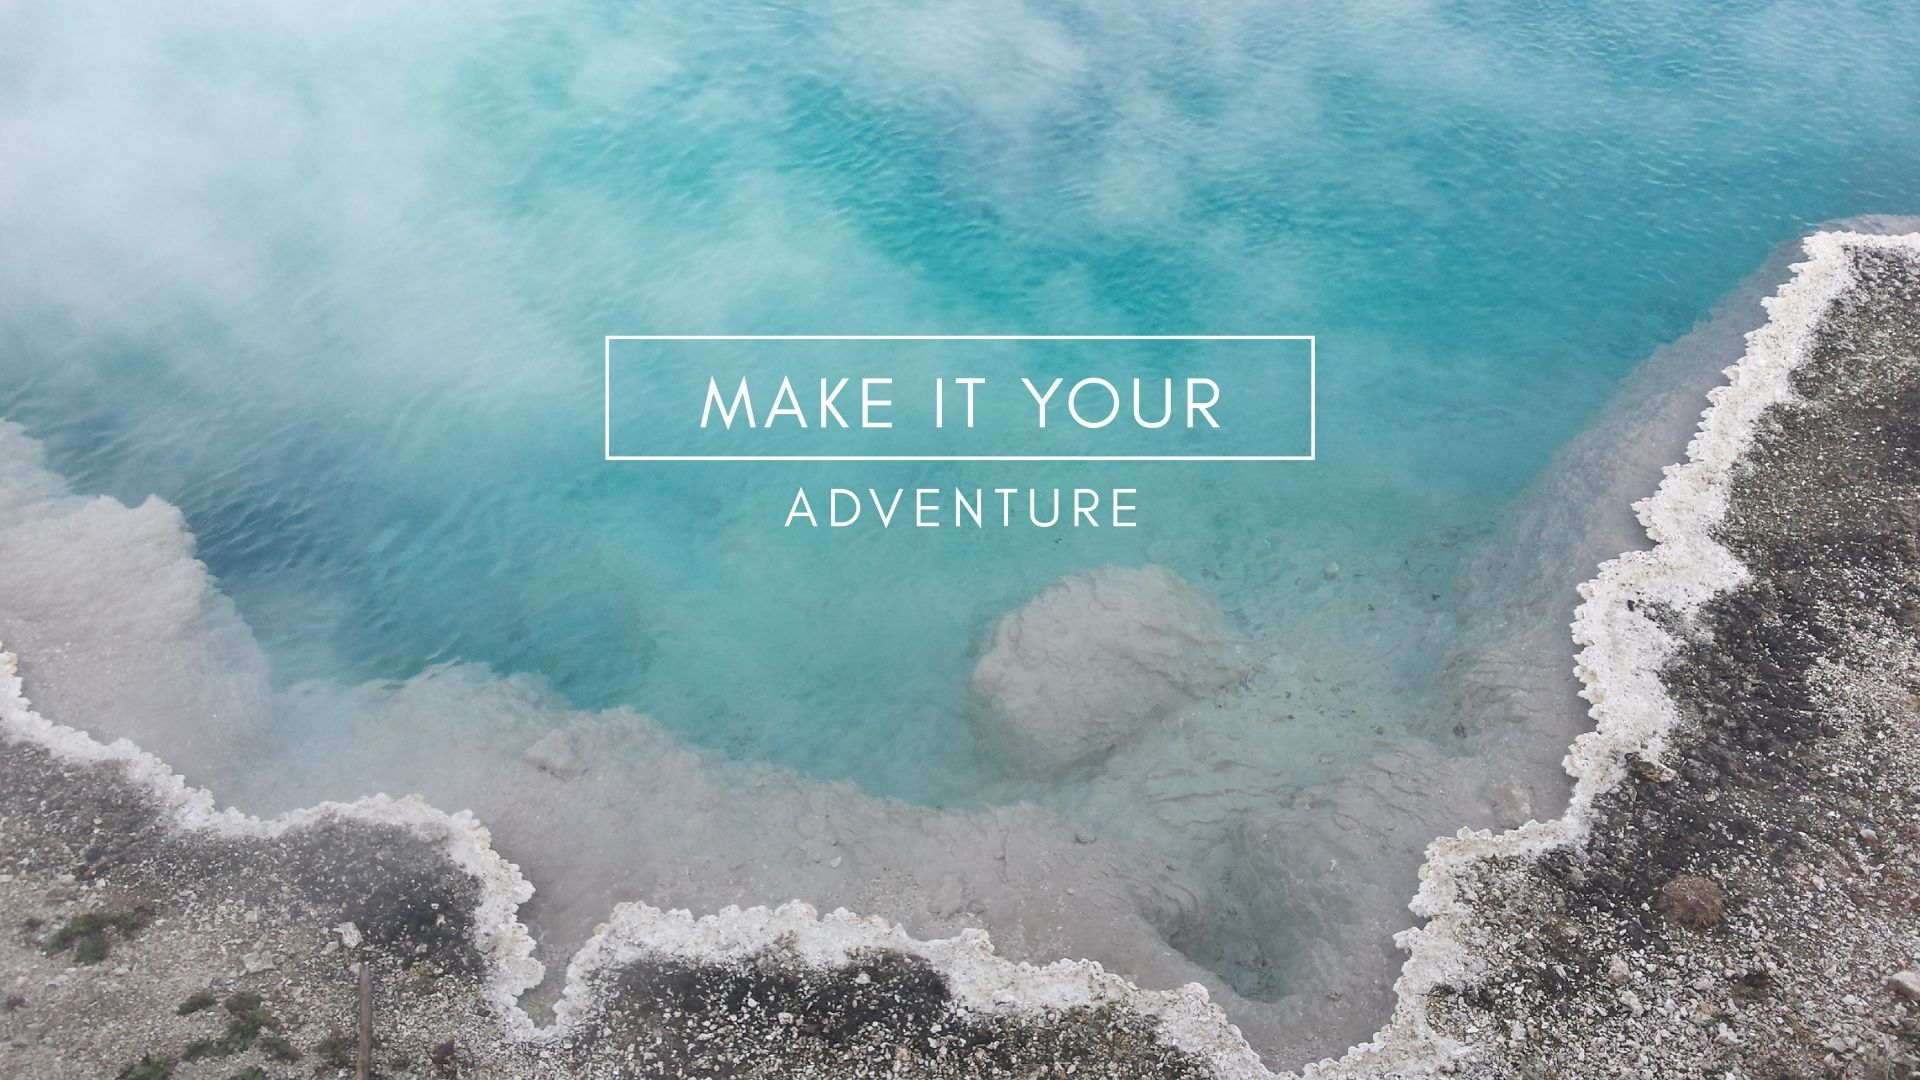 MAKE IT YOUR ADVENTURE